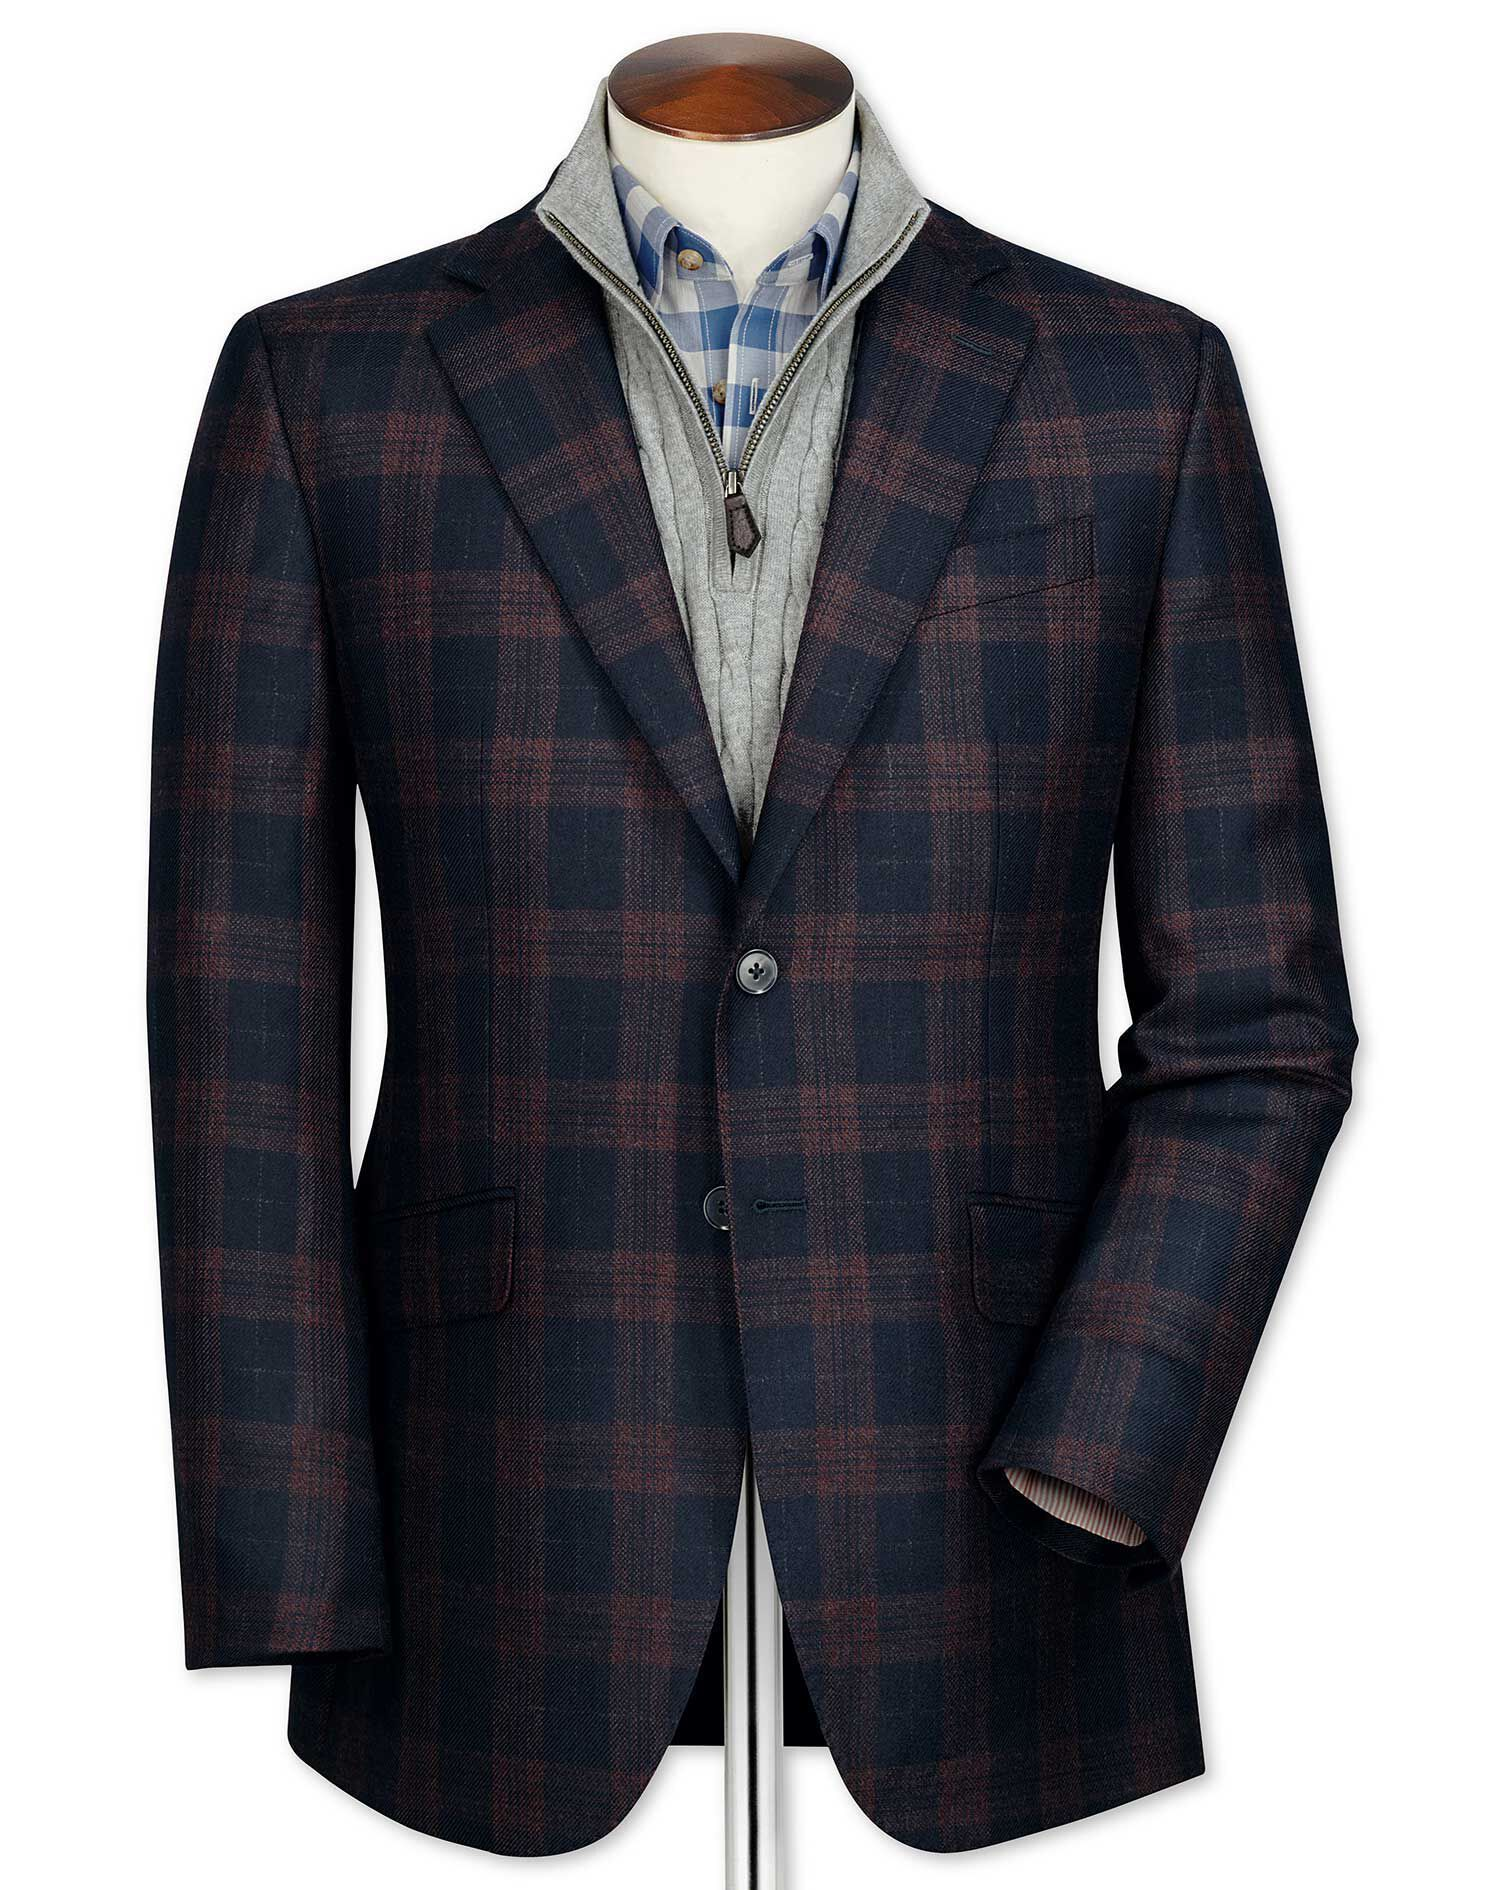 Slim Fit Navy Checkered Lambswool Wool Jacket Size 44 Short by Charles Tyrwhitt